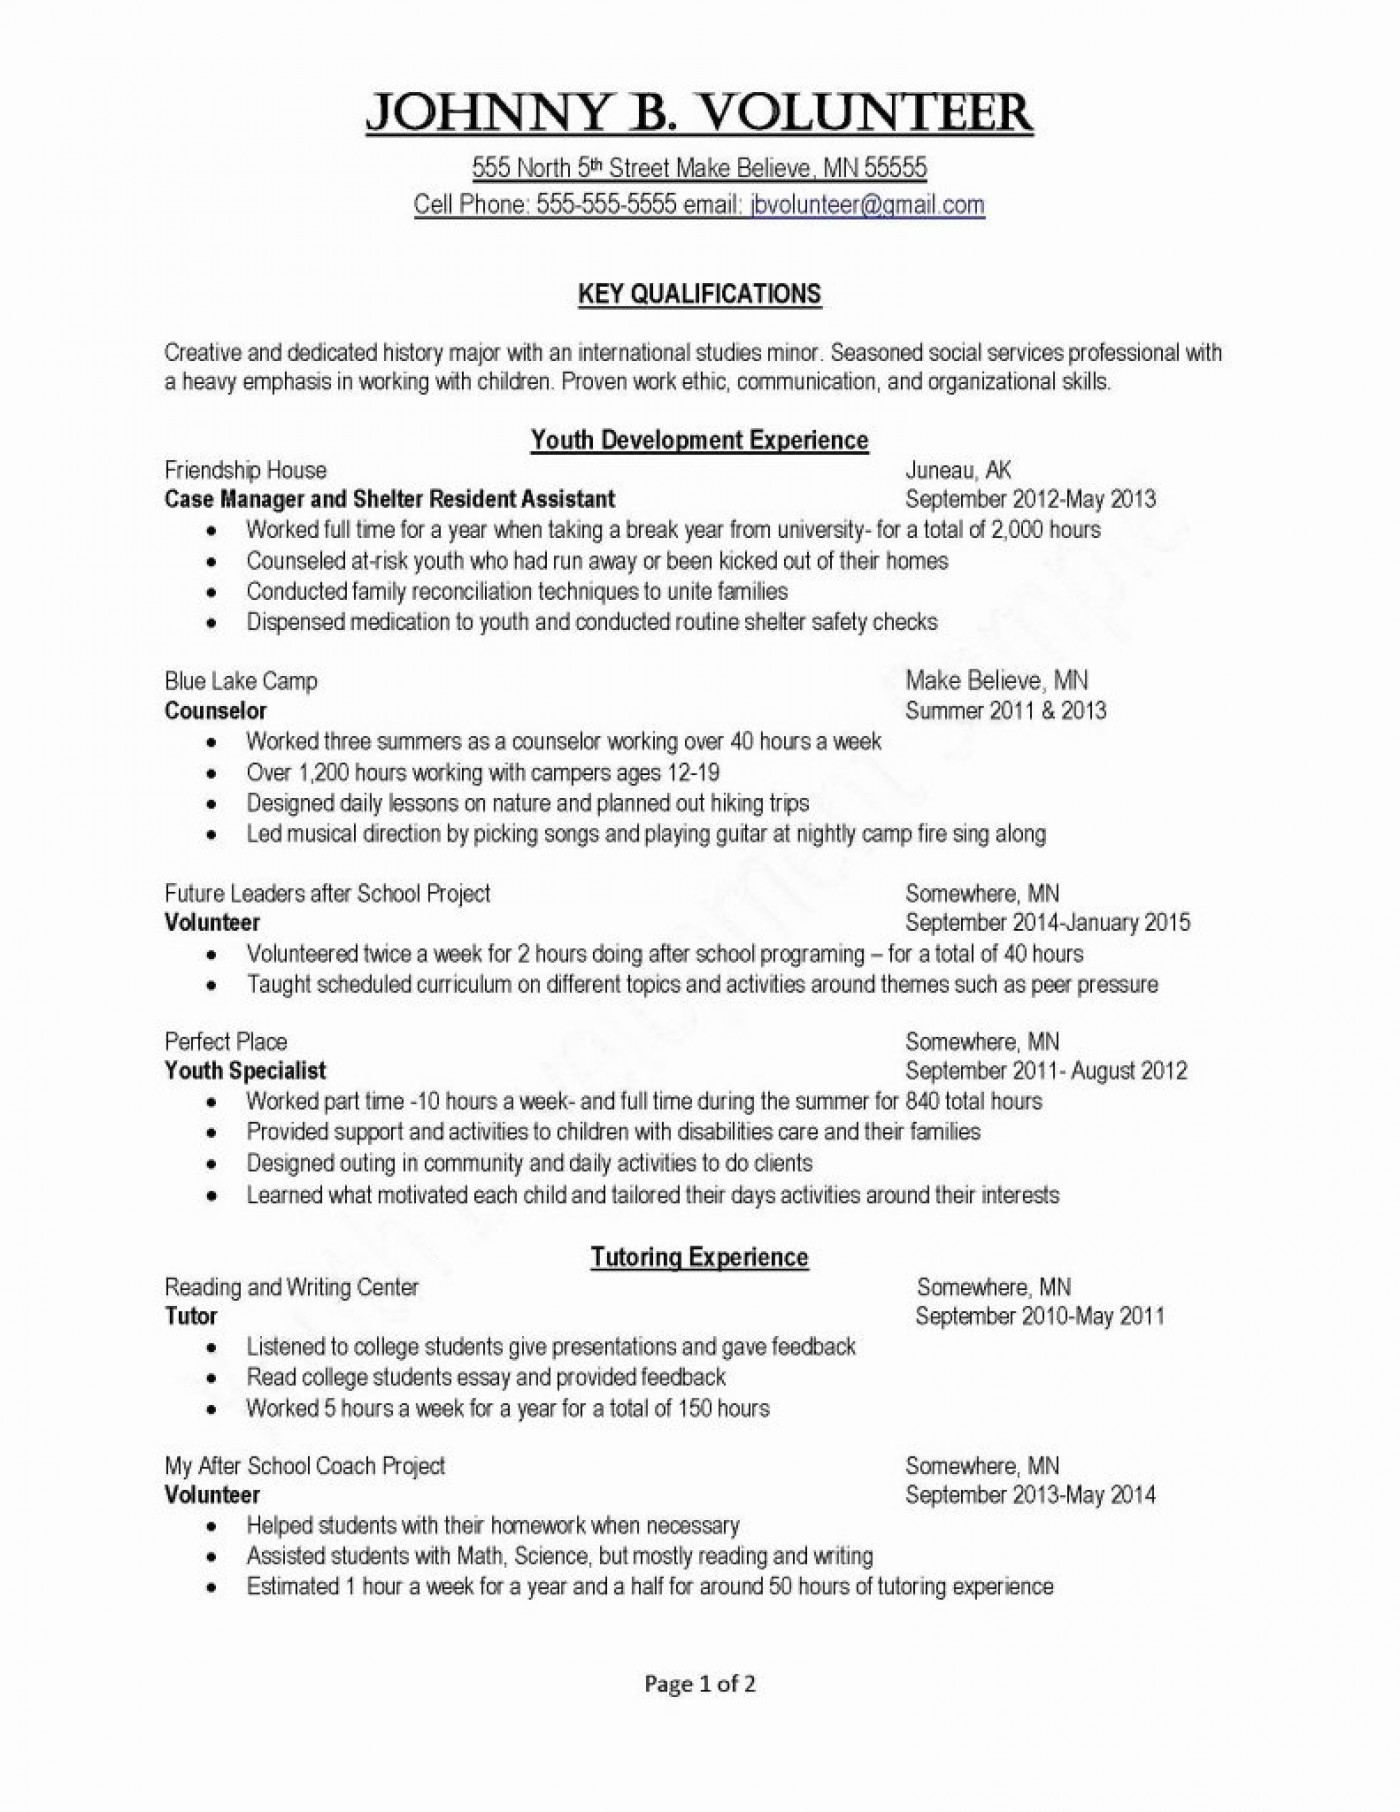 002 Essay Example Reddit Writing Service Photograph Of Resume Help